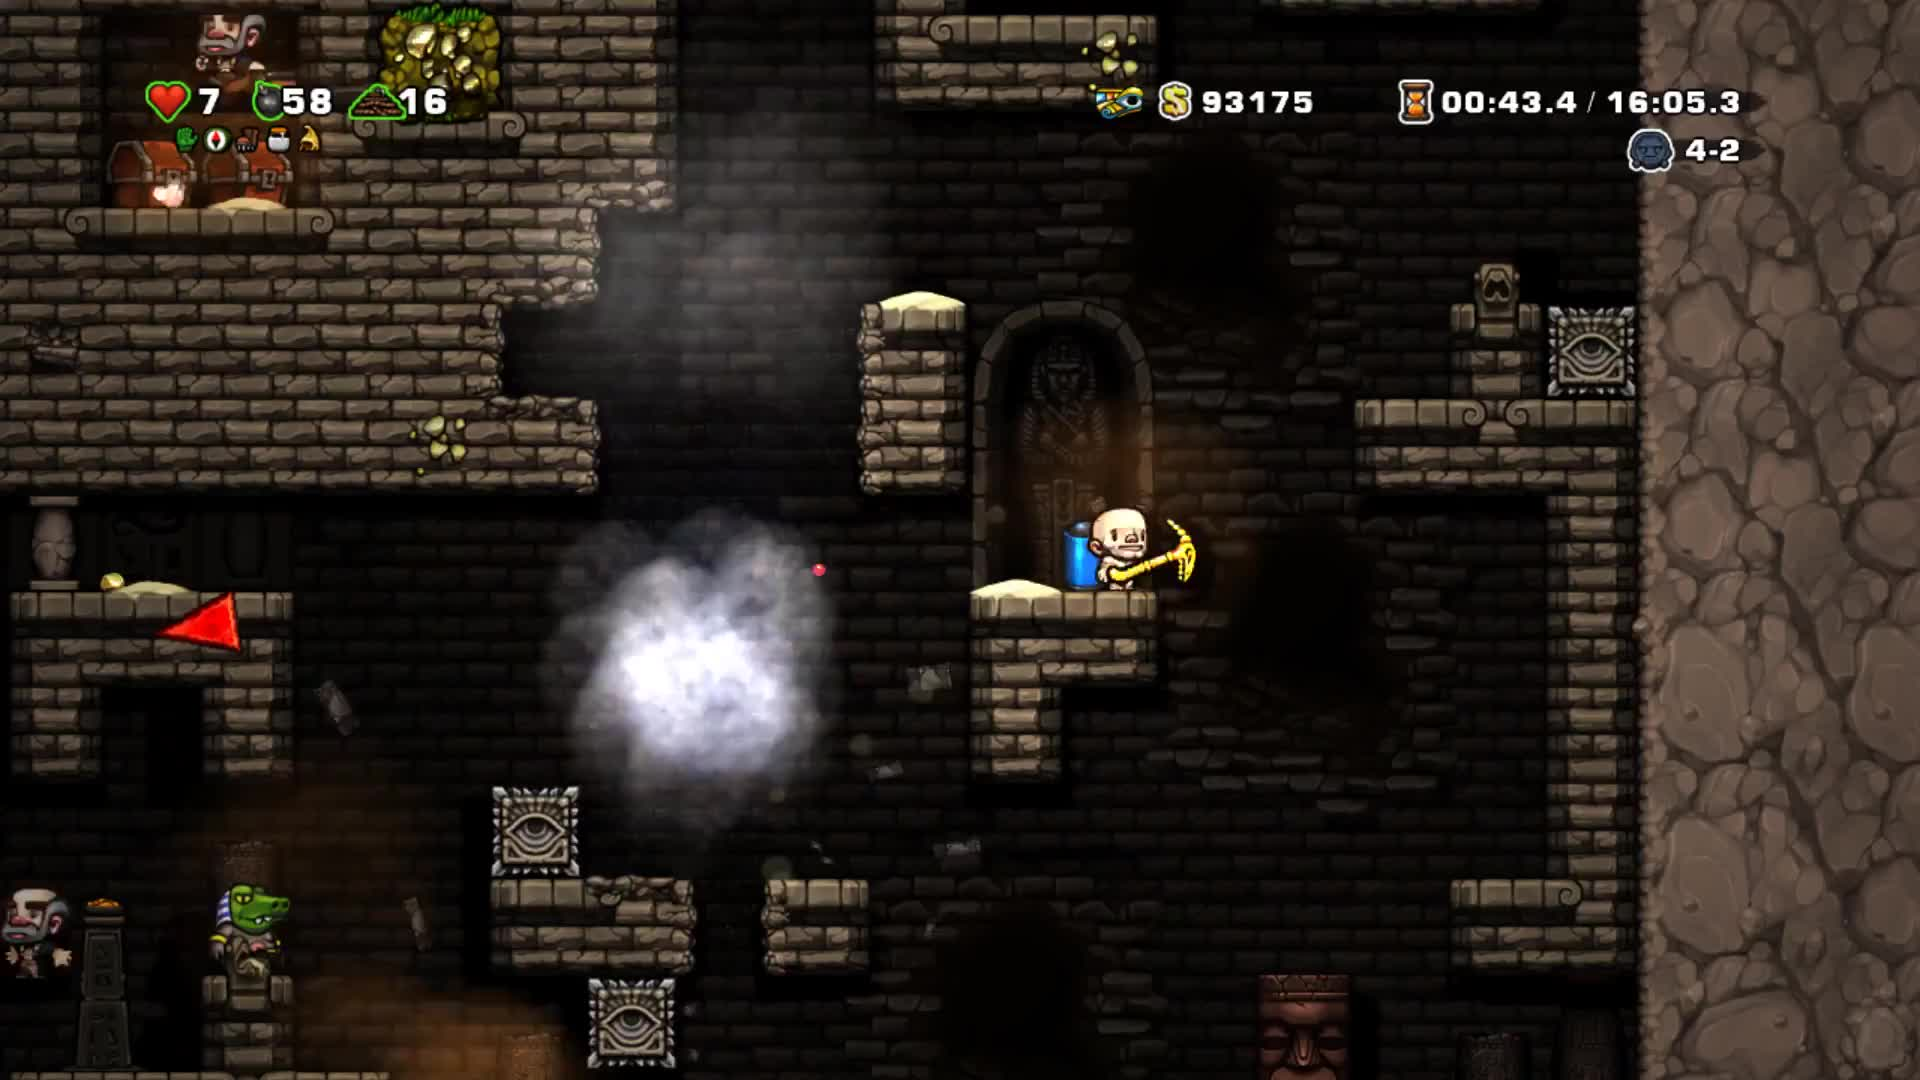 #GeForceGTX, #ShotWithGeForce, #Spelunky, Gaming, Spelunky | Shot with GeForce GIFs